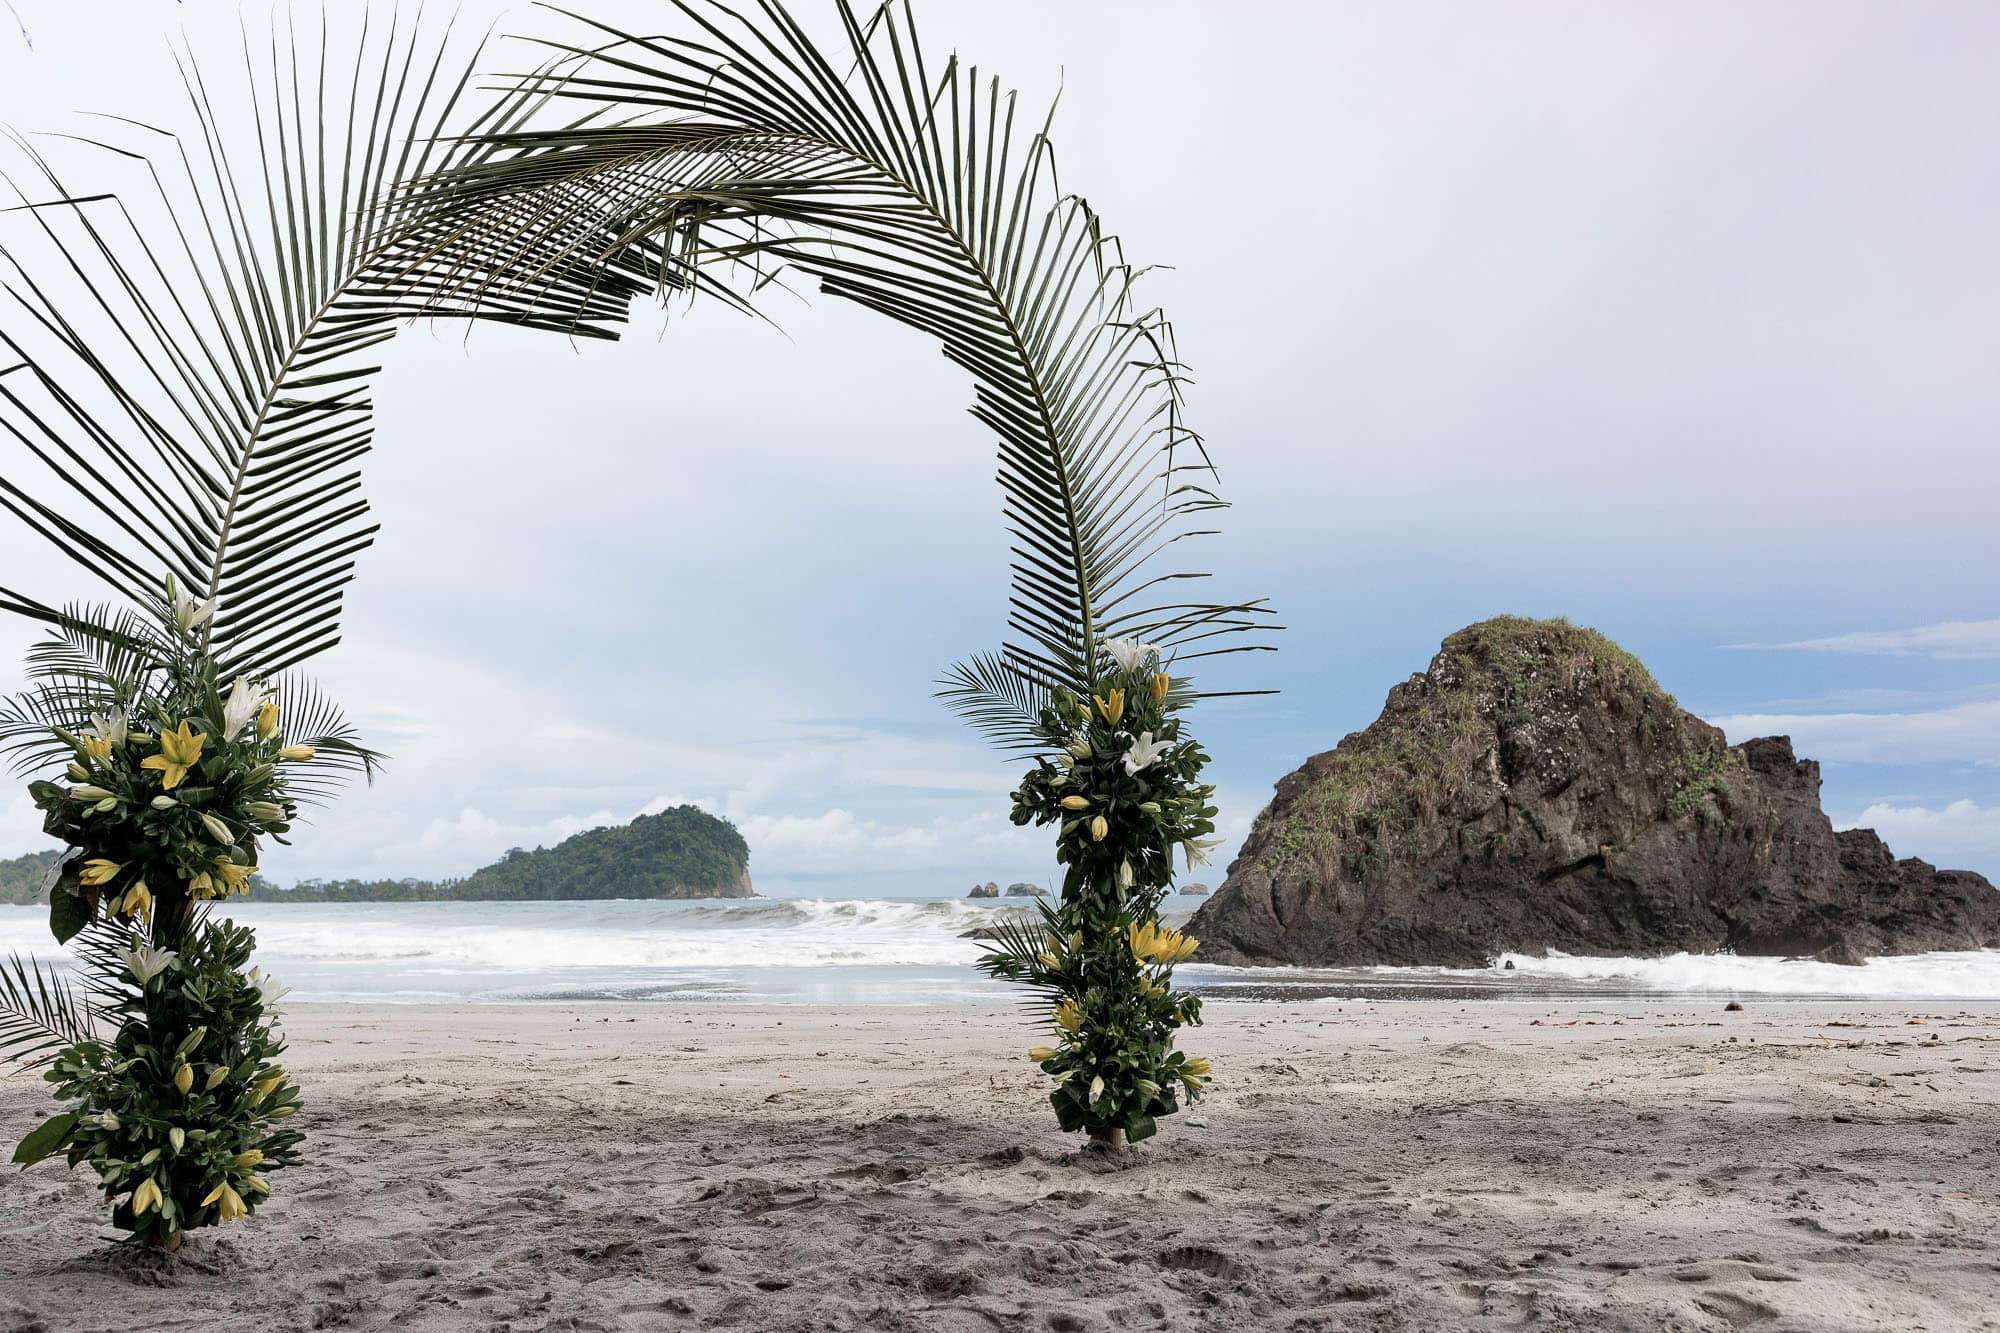 Epic palm frond and flower arbor on the beach